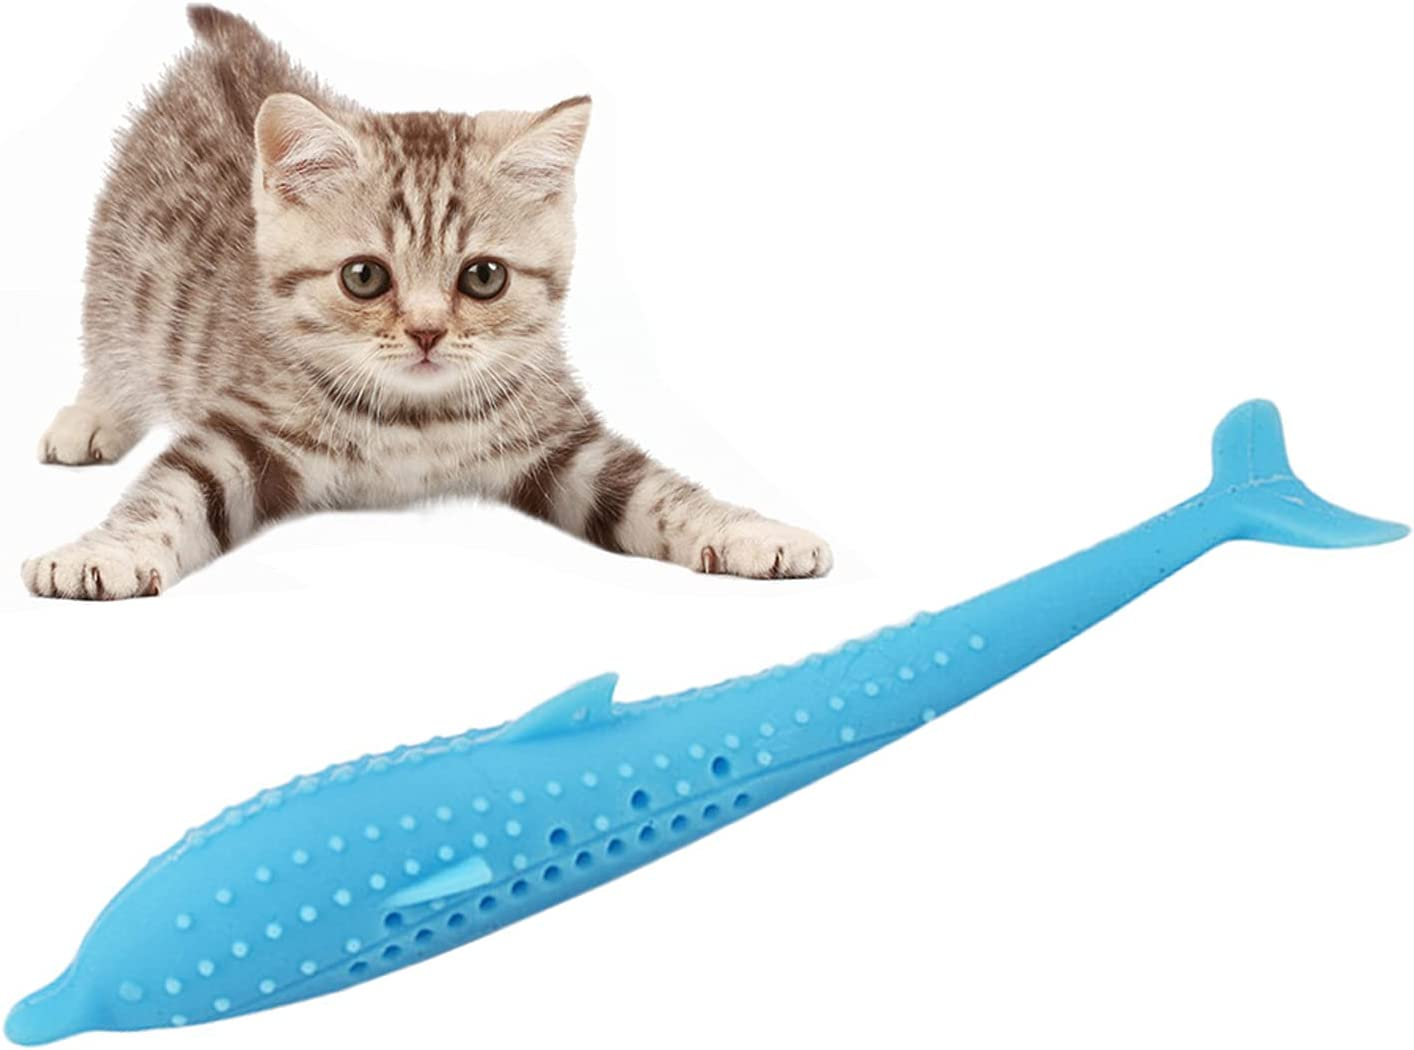 Pet Cat Fish Shape Toothbrush with Catnip Toys,New Interactive Tooth Cleaning Toy for Kitten Kitty,Multi-Function Food Grade Silicone Cat Molar Stick,Get Rid of Bad Breath & Keep Teeth Healthy